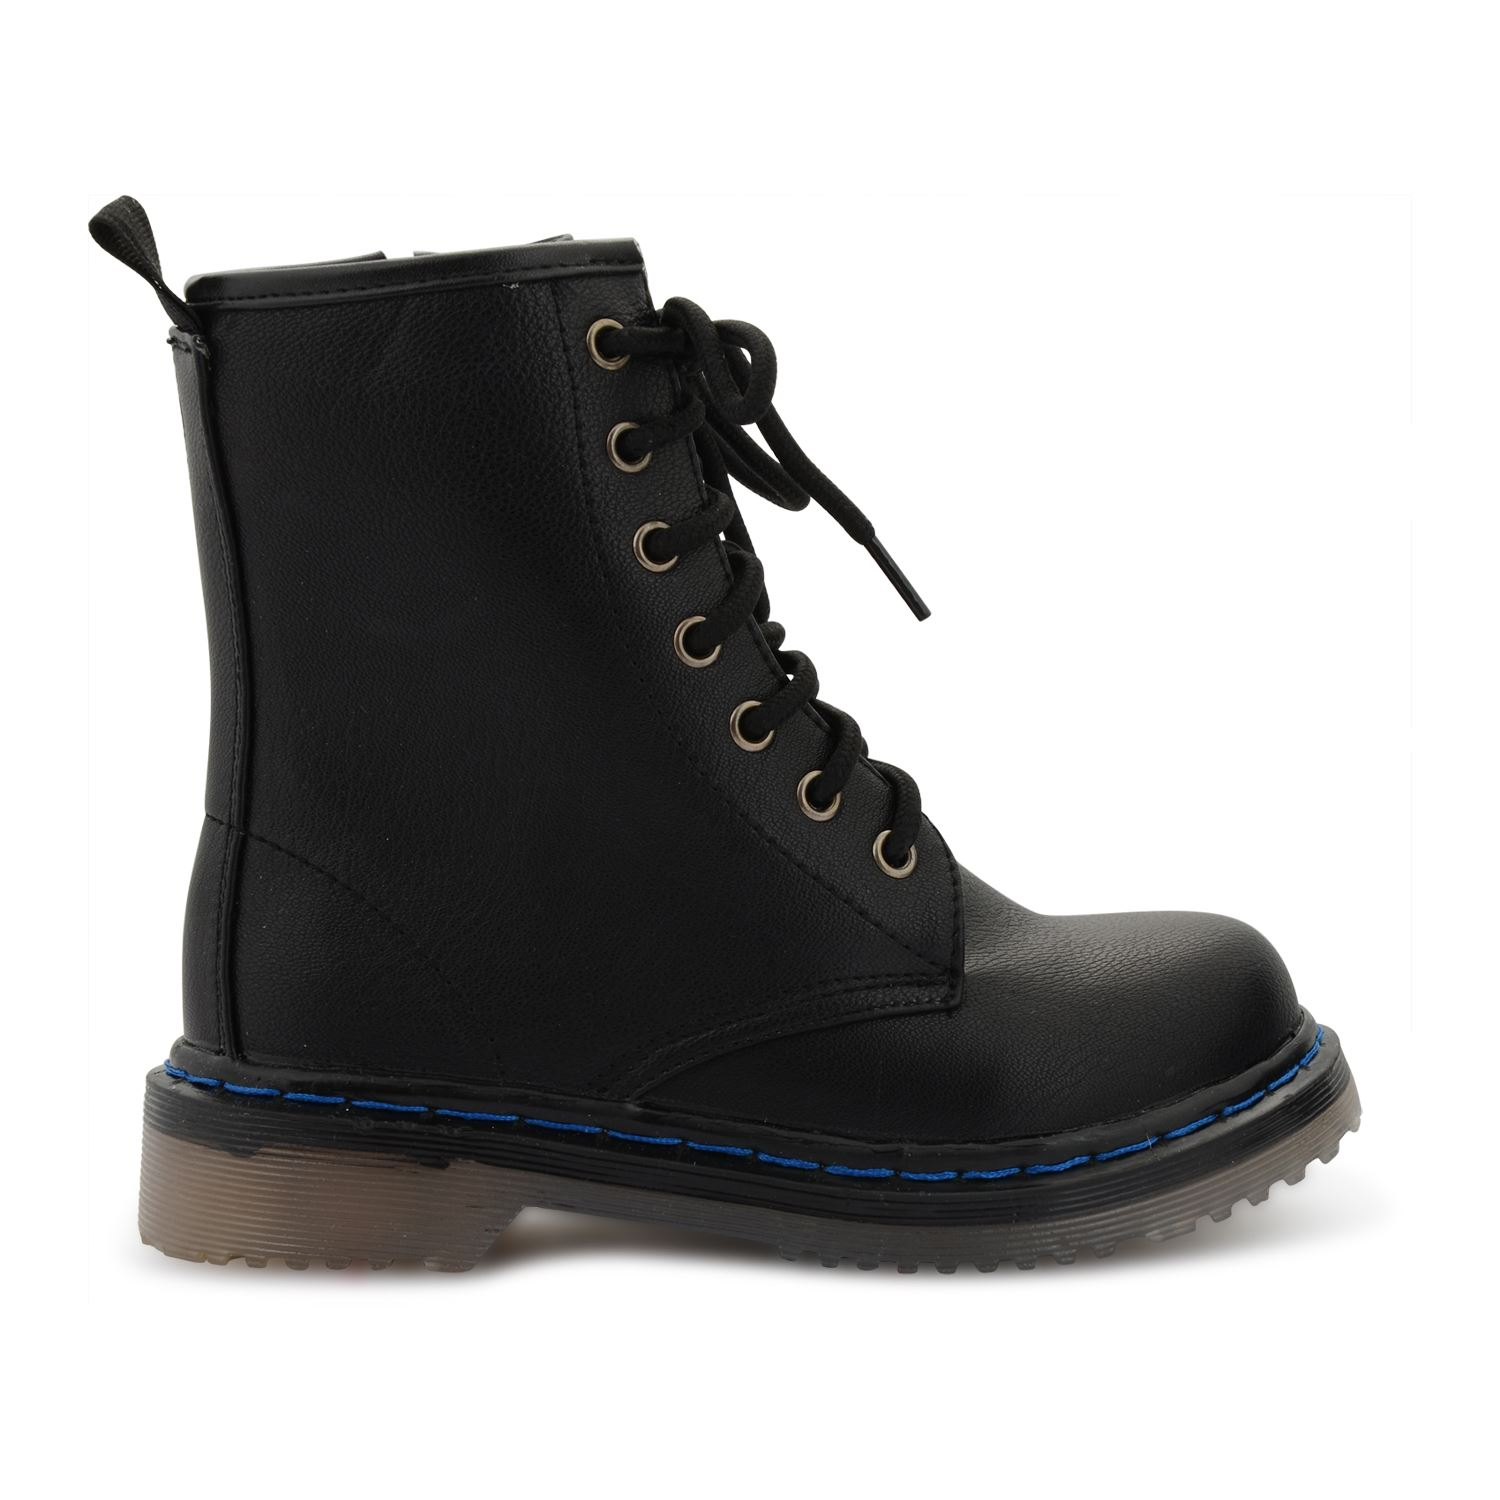 Ankle Boots For Girls Yf79Jsrs